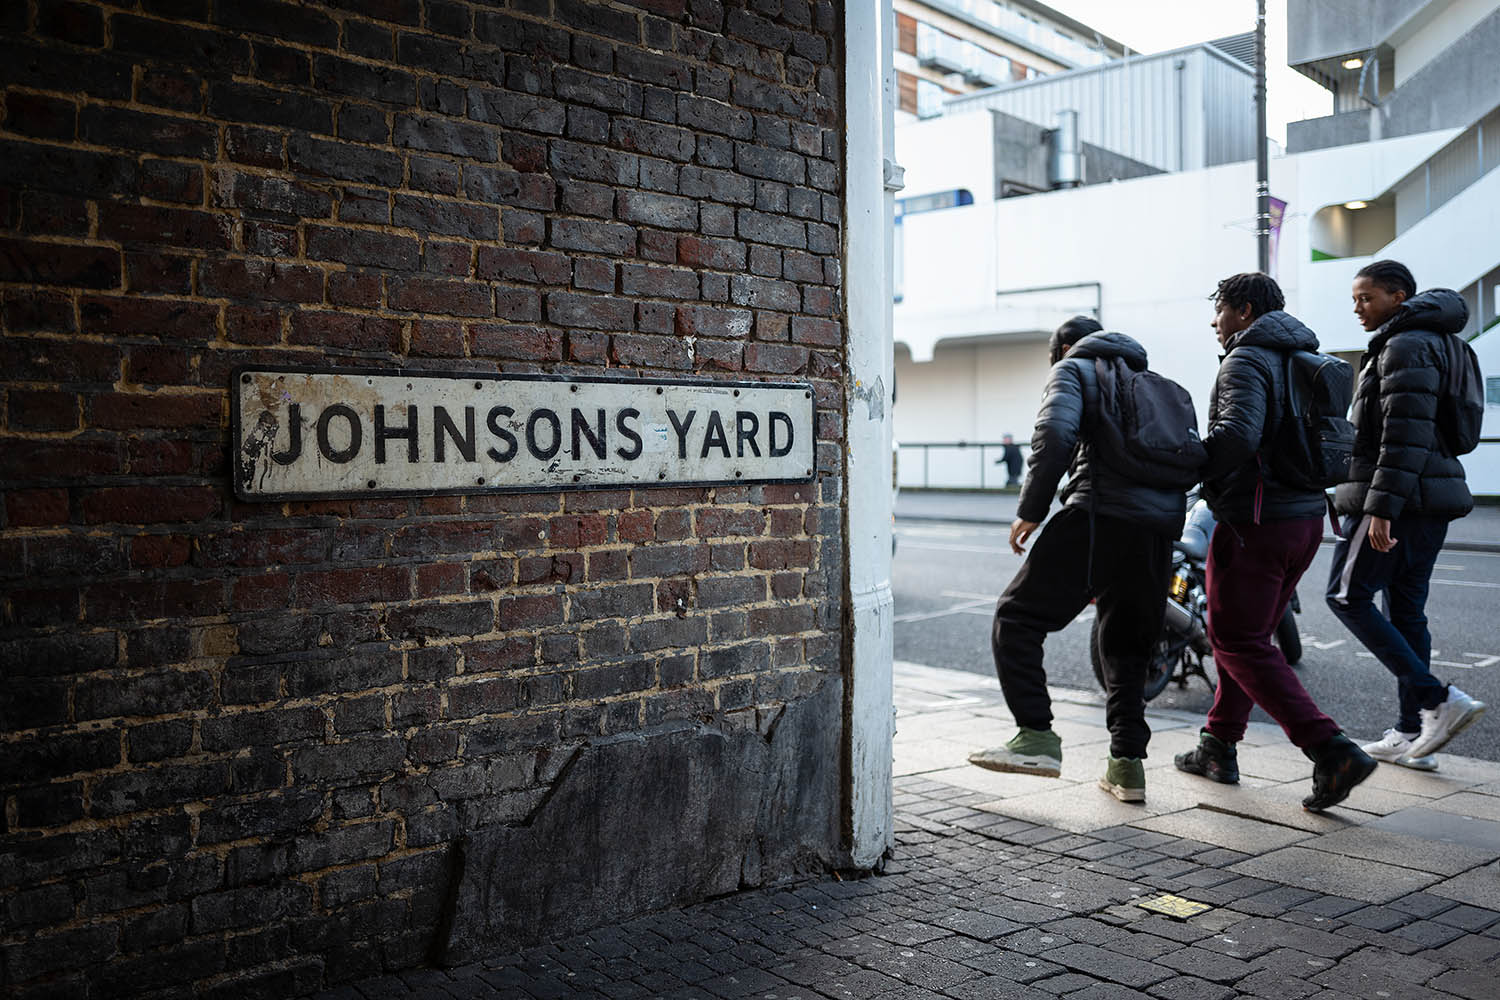 A group of young men walk past Johnsons Yard in Uxbridge, London, on Dec. 9.